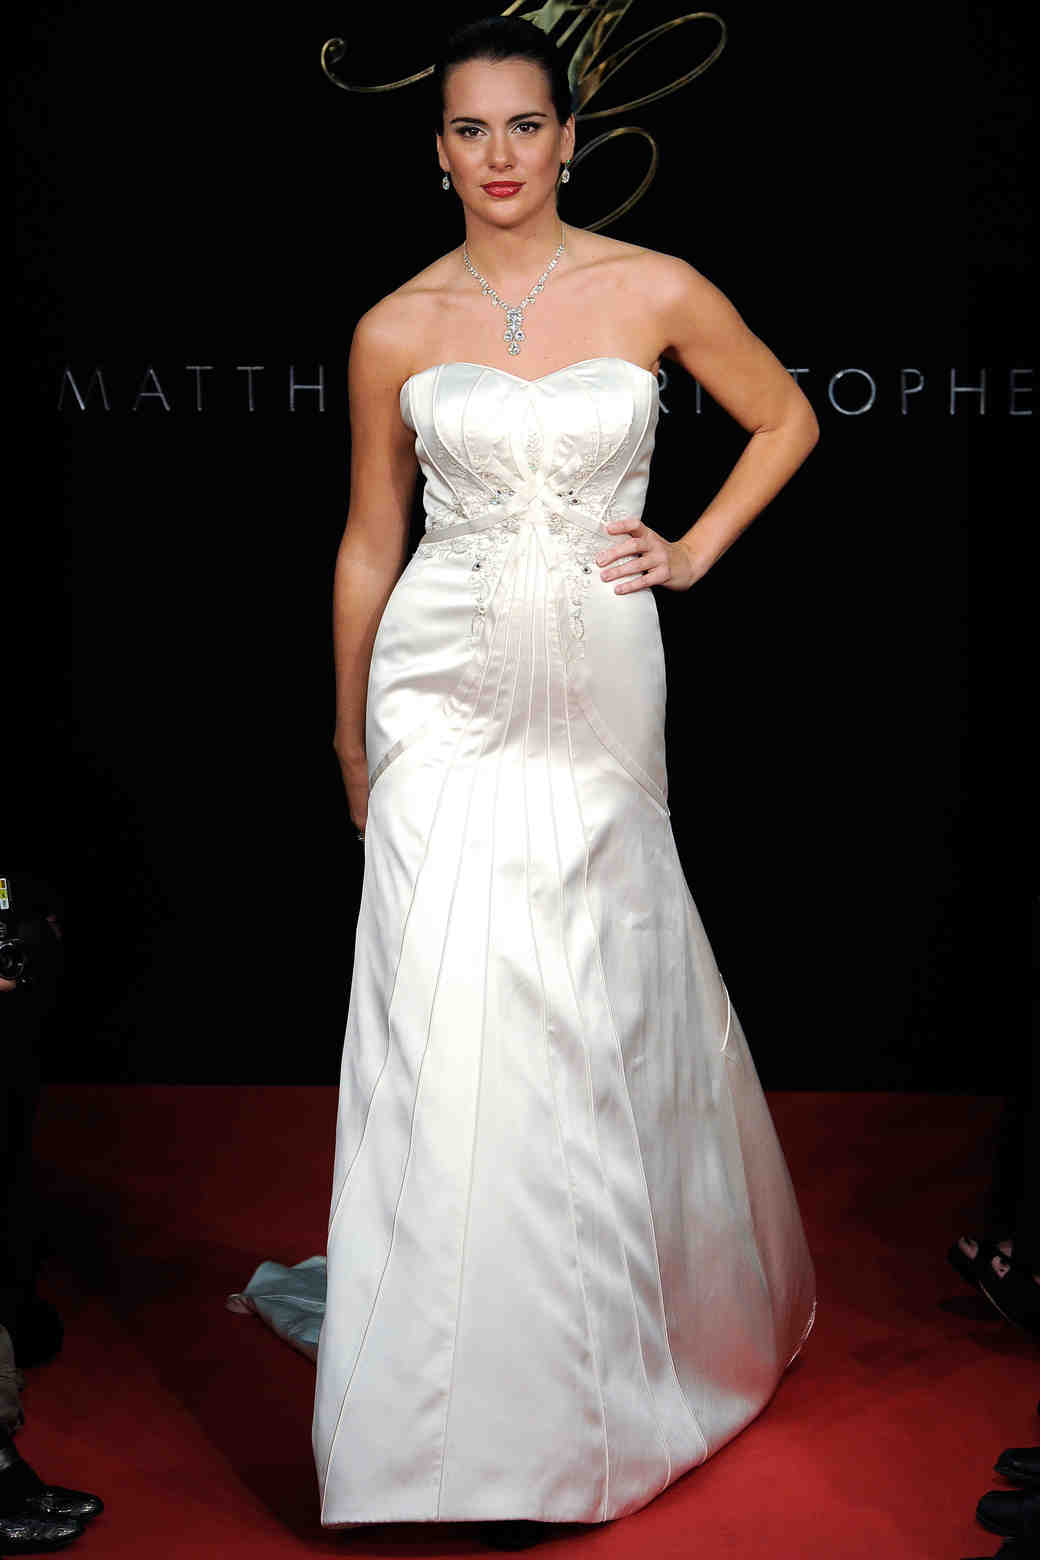 matthew-christo-fall2012-wd108109_003-df.jpg